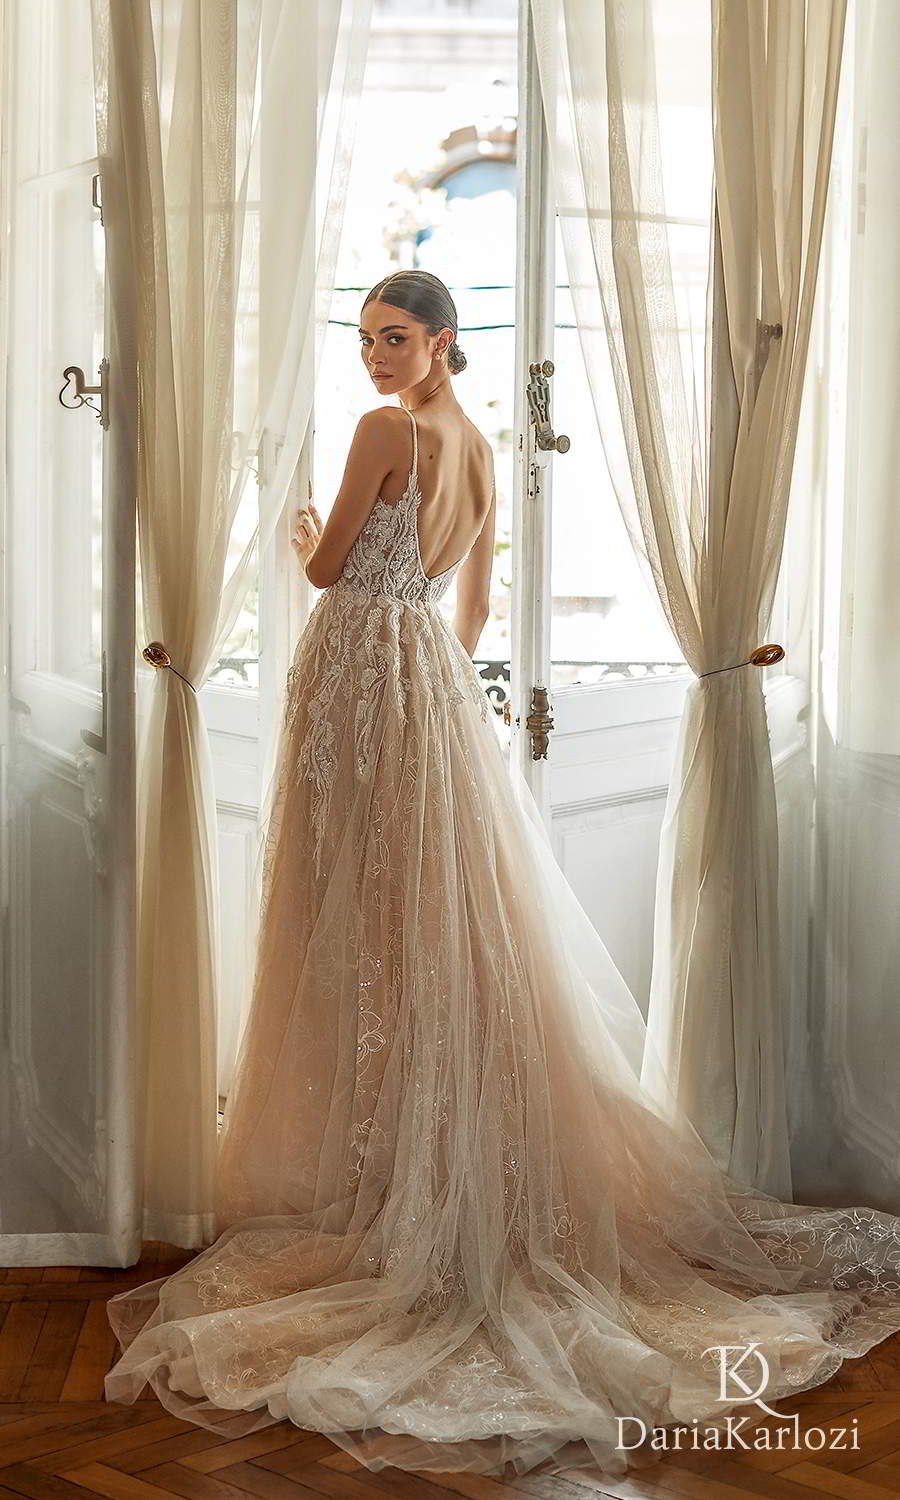 daria karlozi 2021 graceful dream bridal sleeveless beaded straps plunging v neckline embellished a line ball gown wedding dress chapel train (wind touch) bv